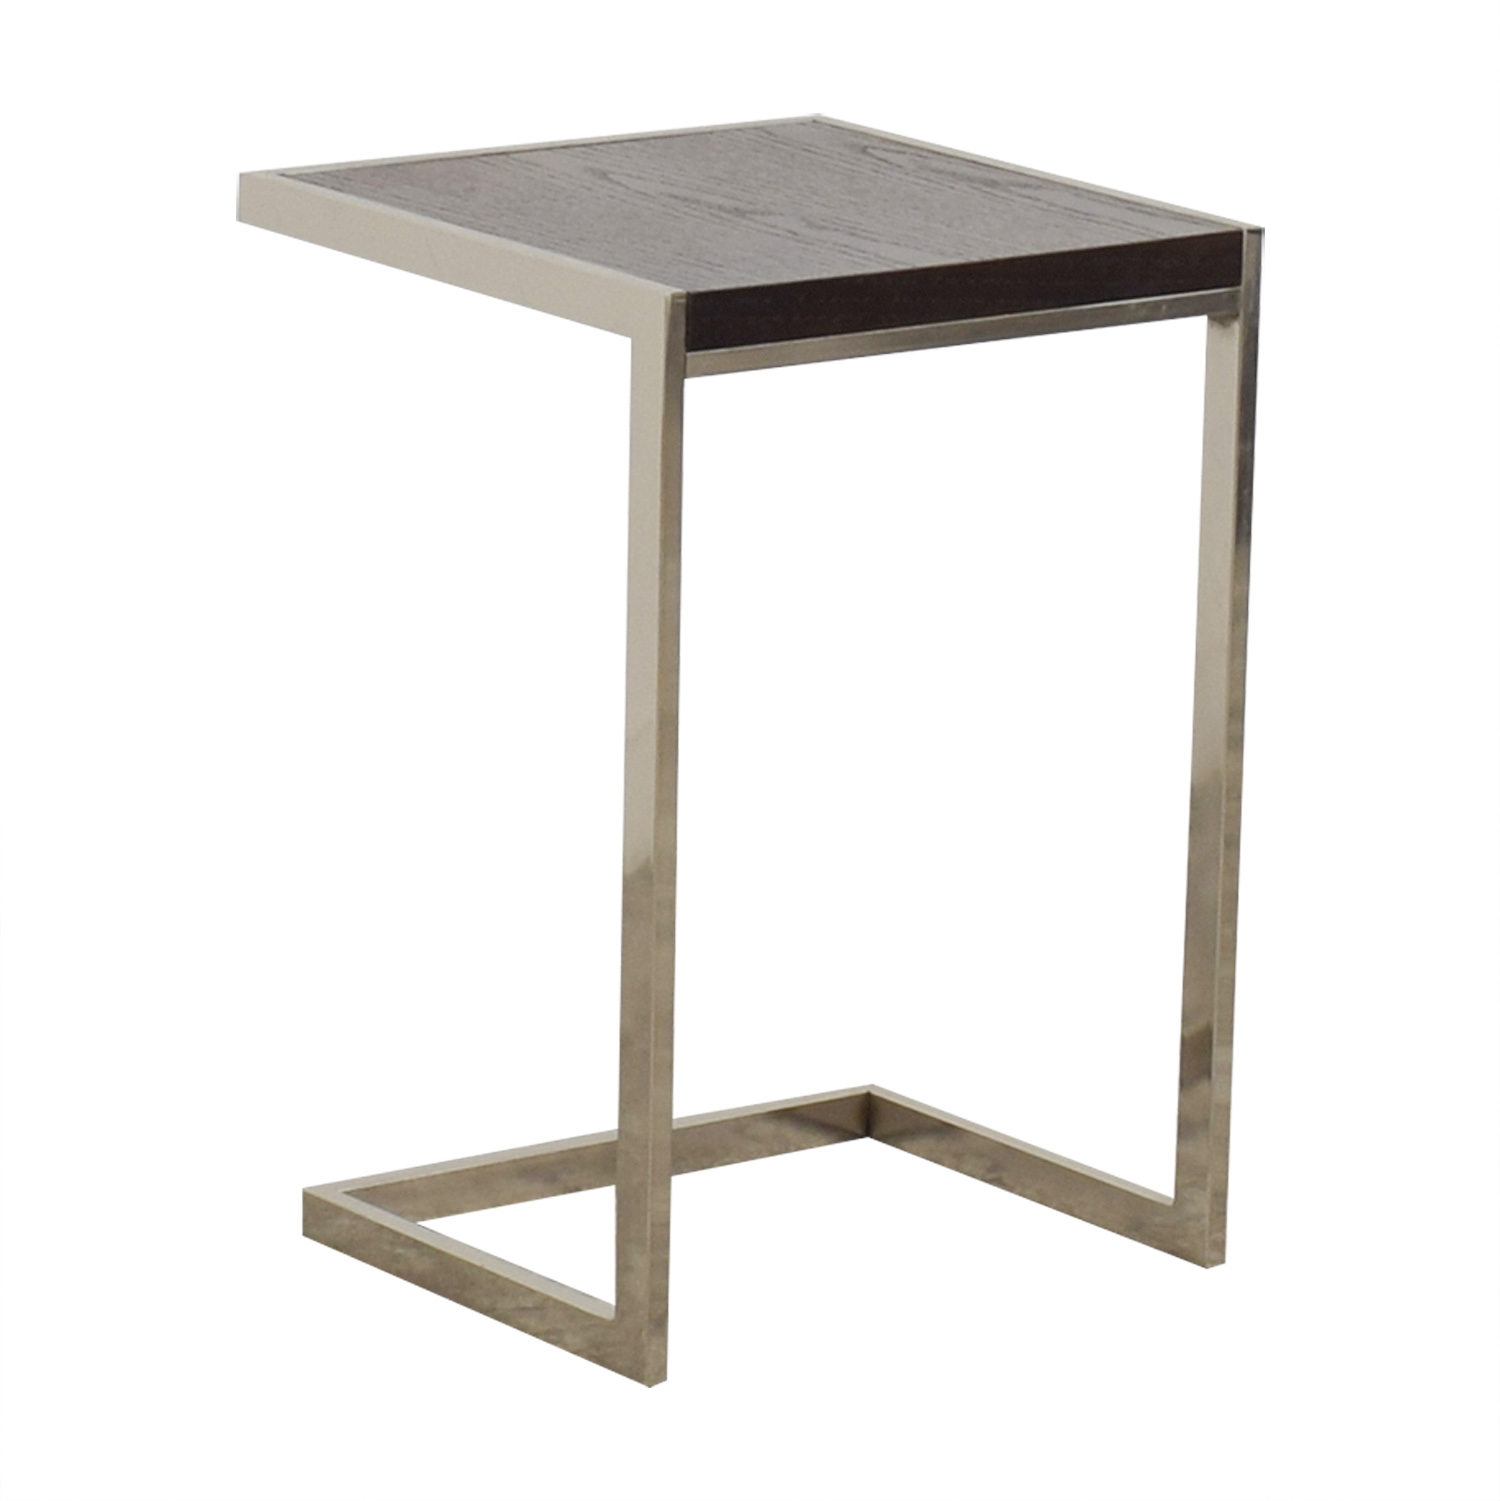 best website b2664 d2e9a 56% OFF - West Elm West Elm C-Shaped Wood and Chrome Side Table / Tables